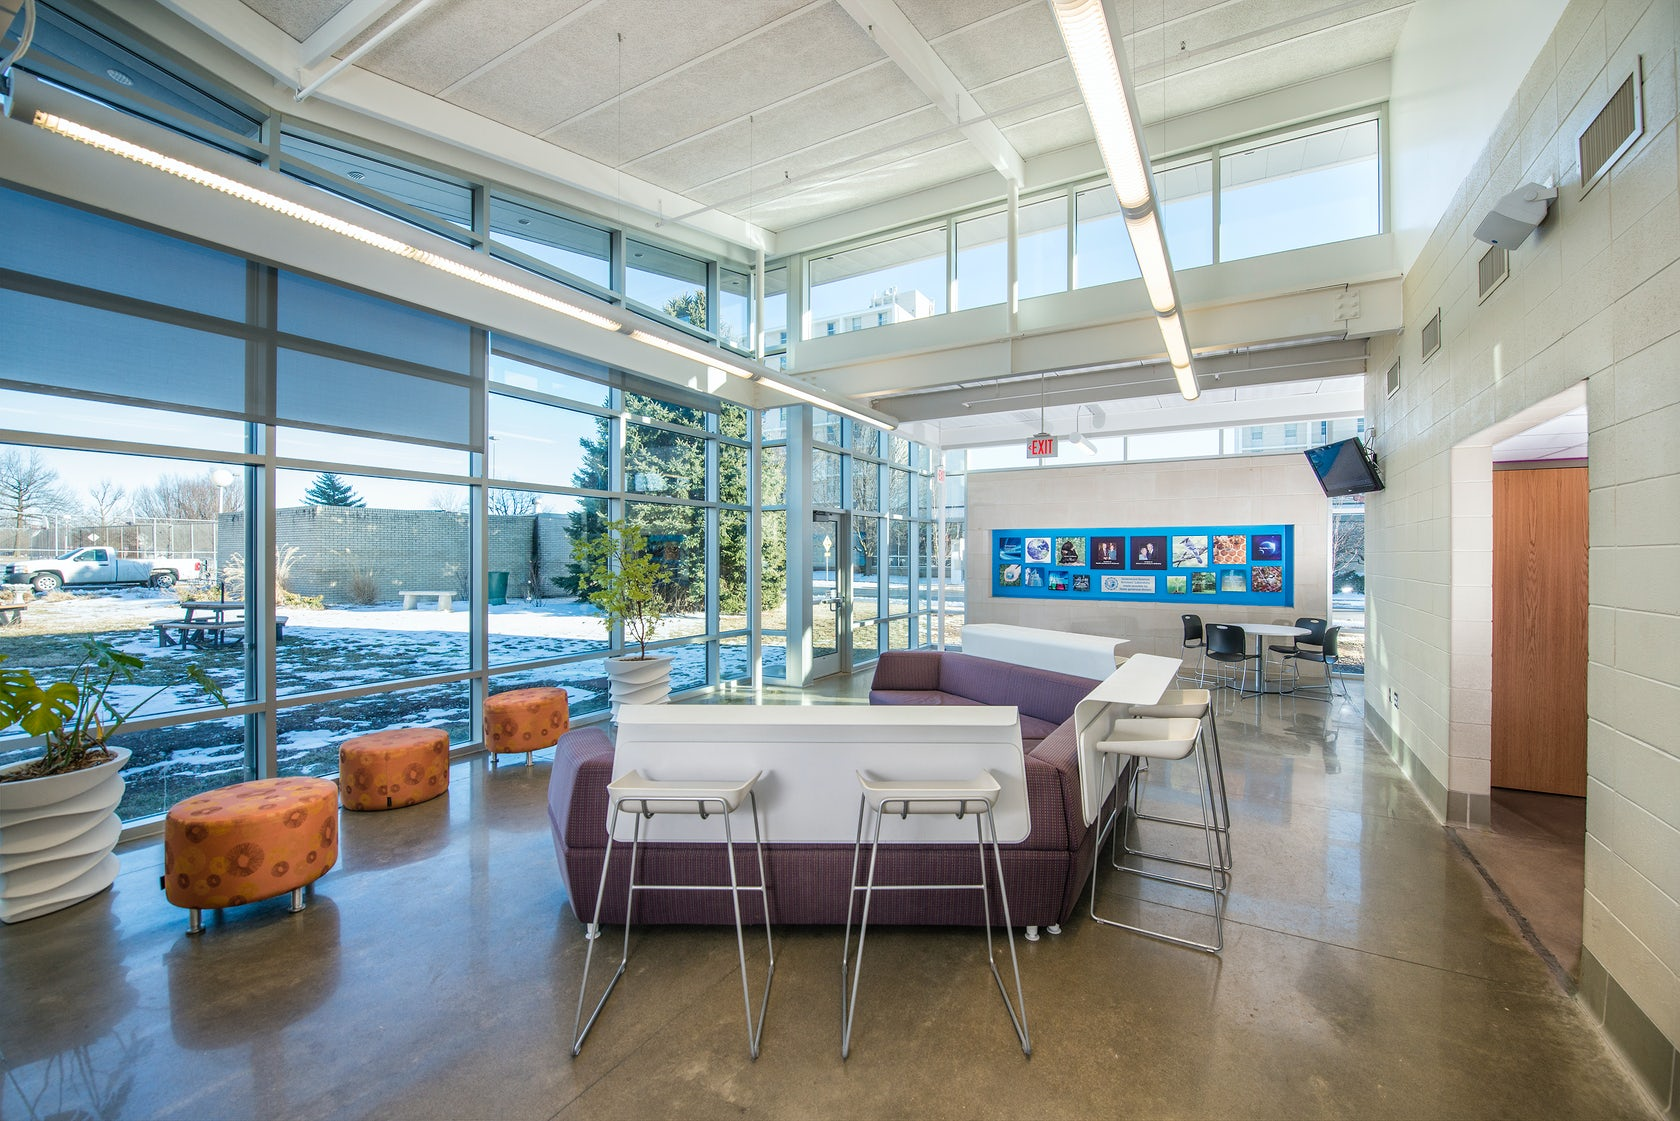 Greenwood lab school science scholars addition architizer for Acacia salon loveland